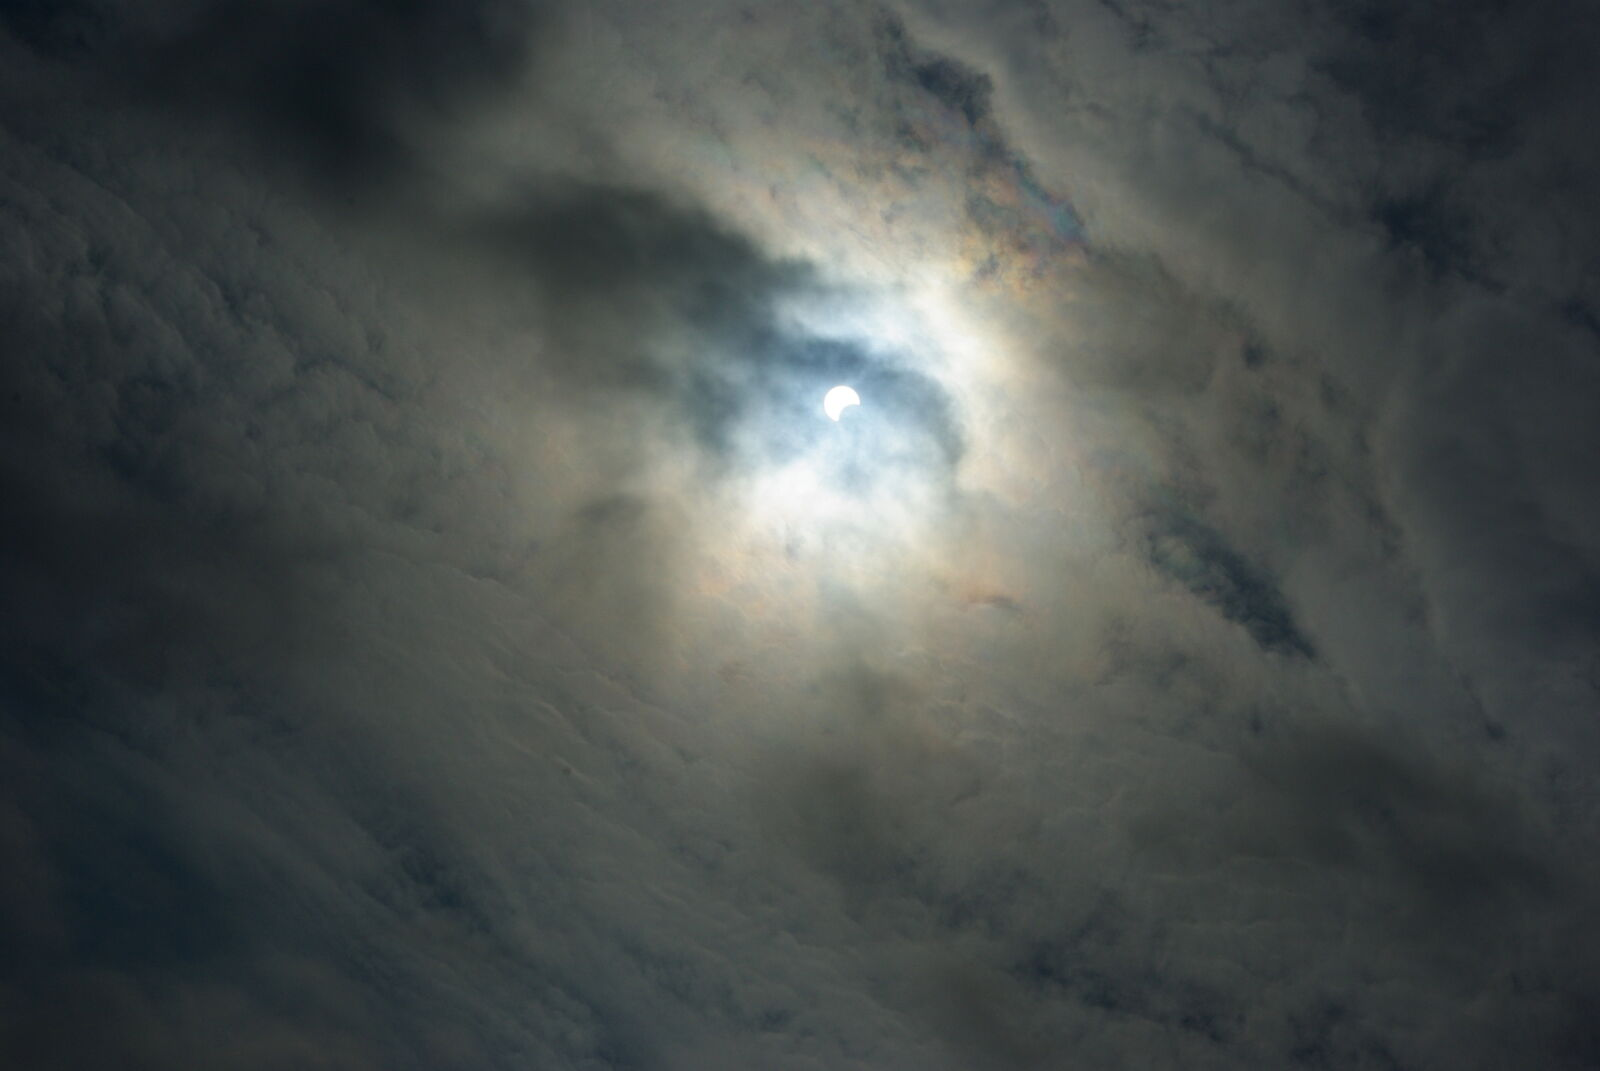 """Pentax K10D sample photo. """"Clouds, eclipse, moon, partial"""" photography"""